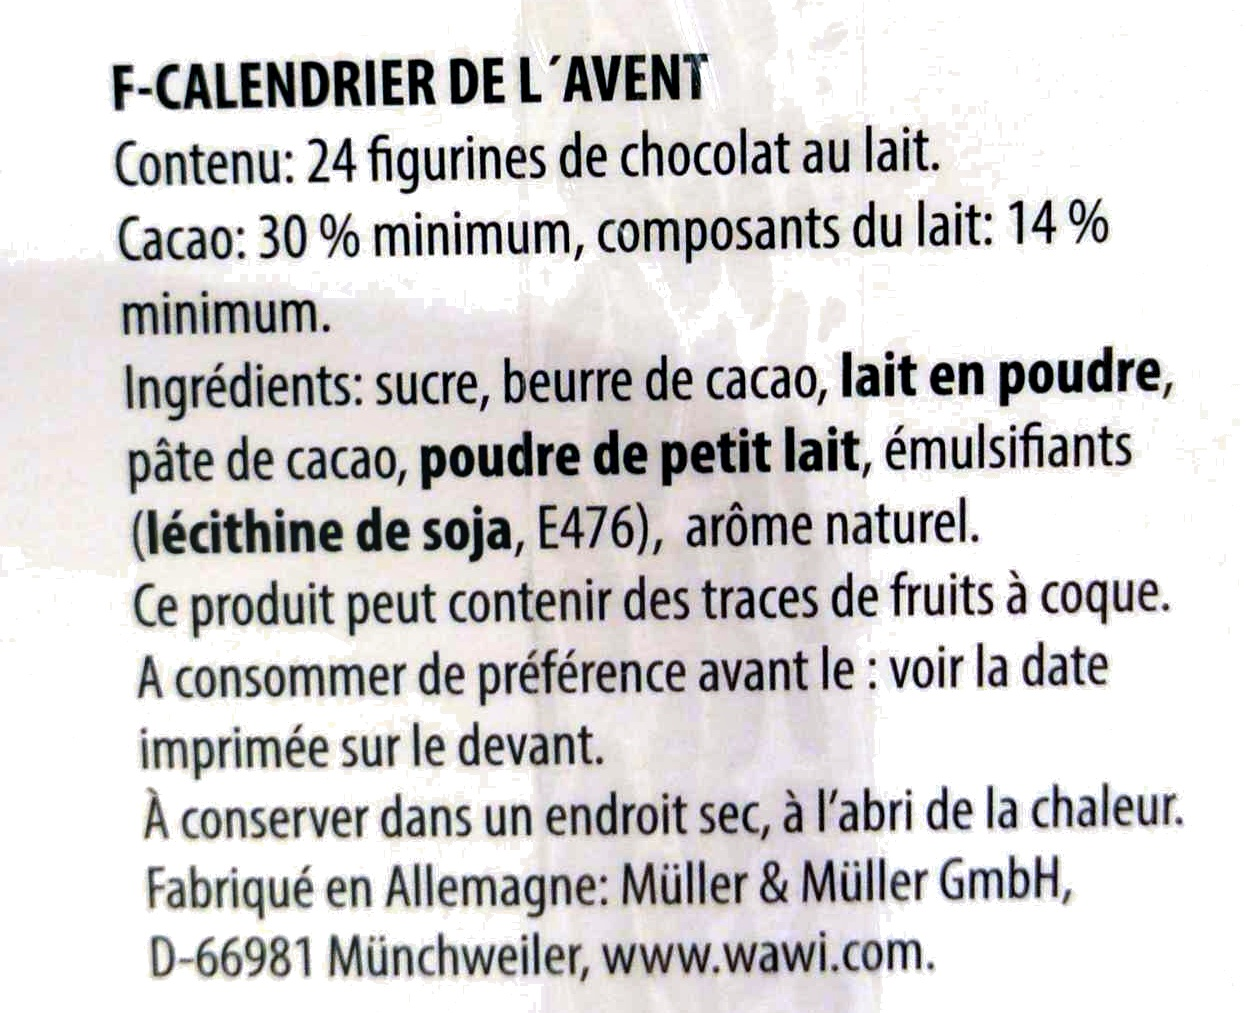 Calendrier de l'Avent - Ingredients